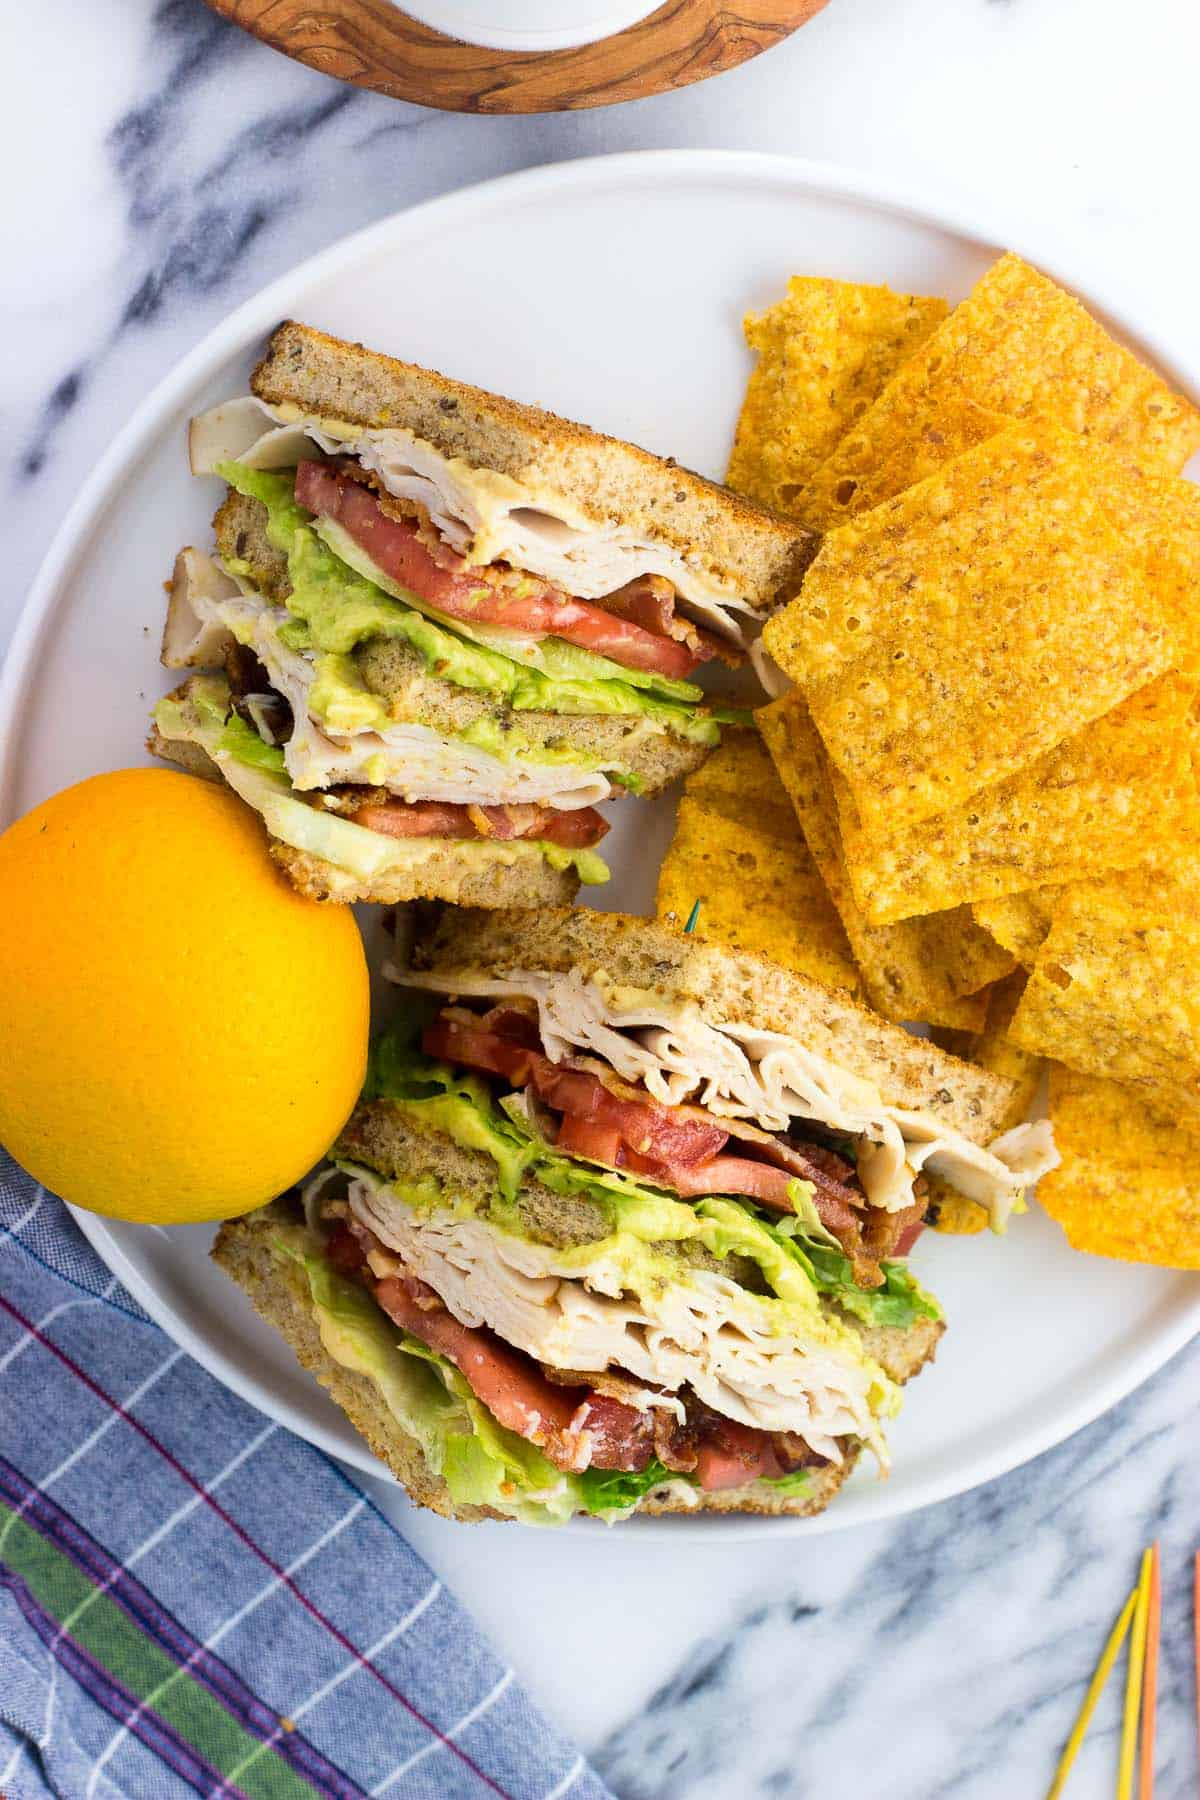 The sliced sandwich on a plate with an orange and chips.